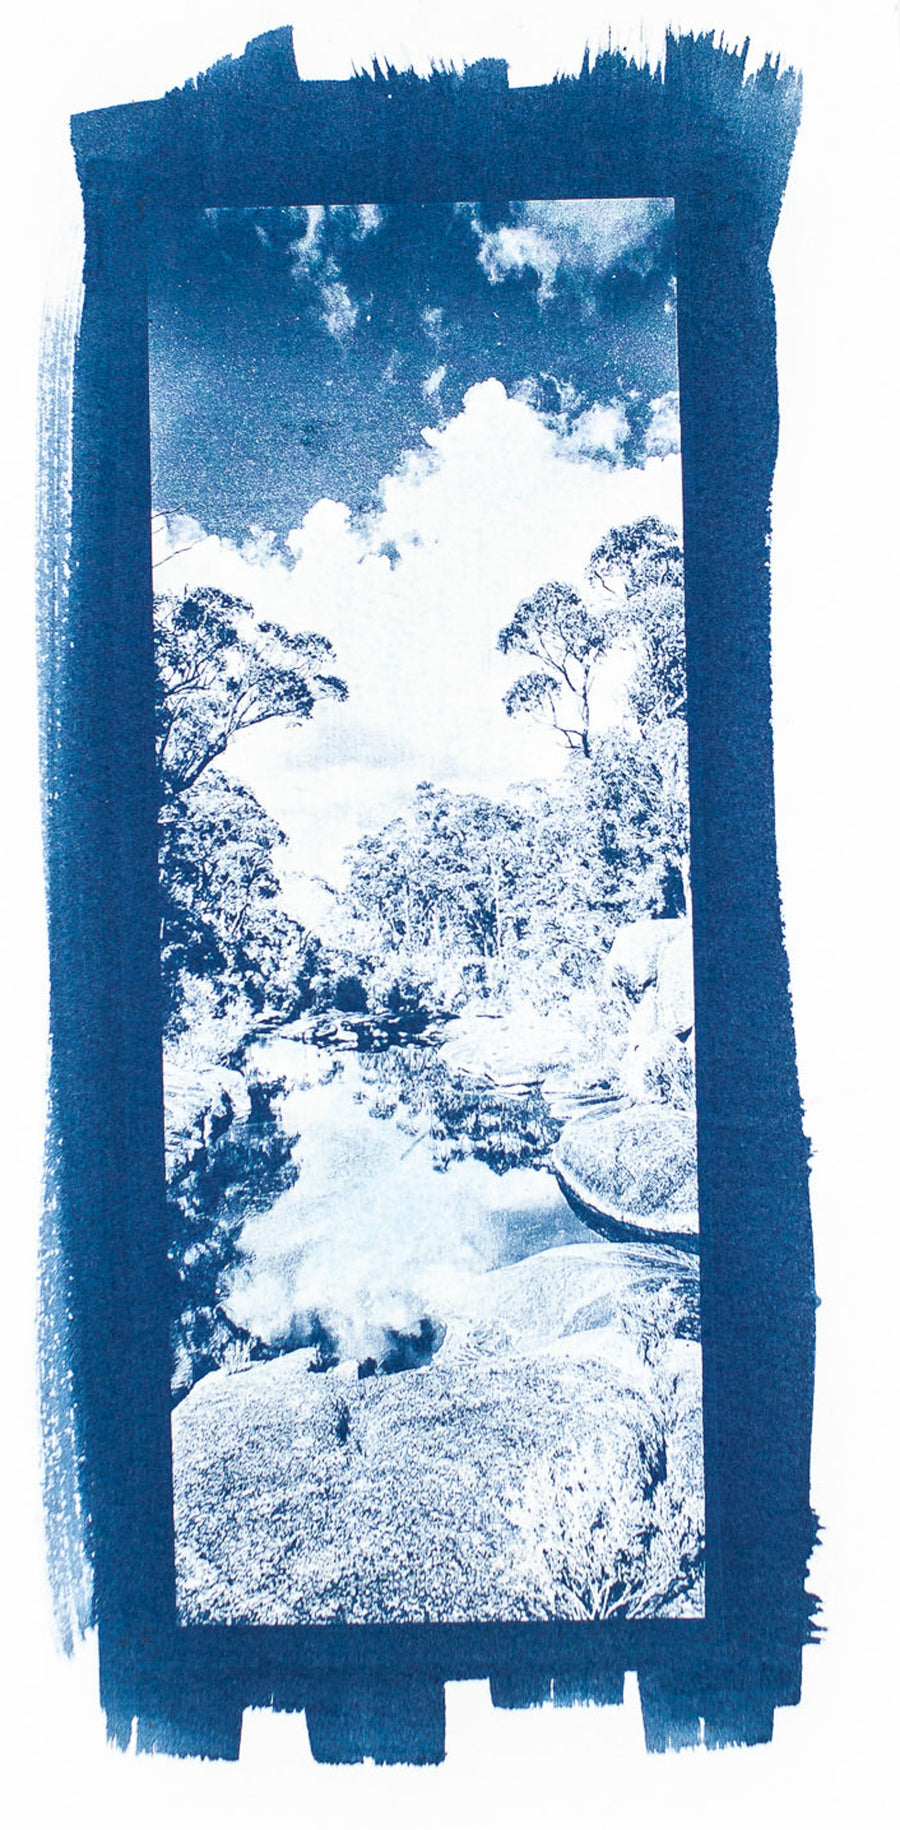 Creek Bed Cyanotype